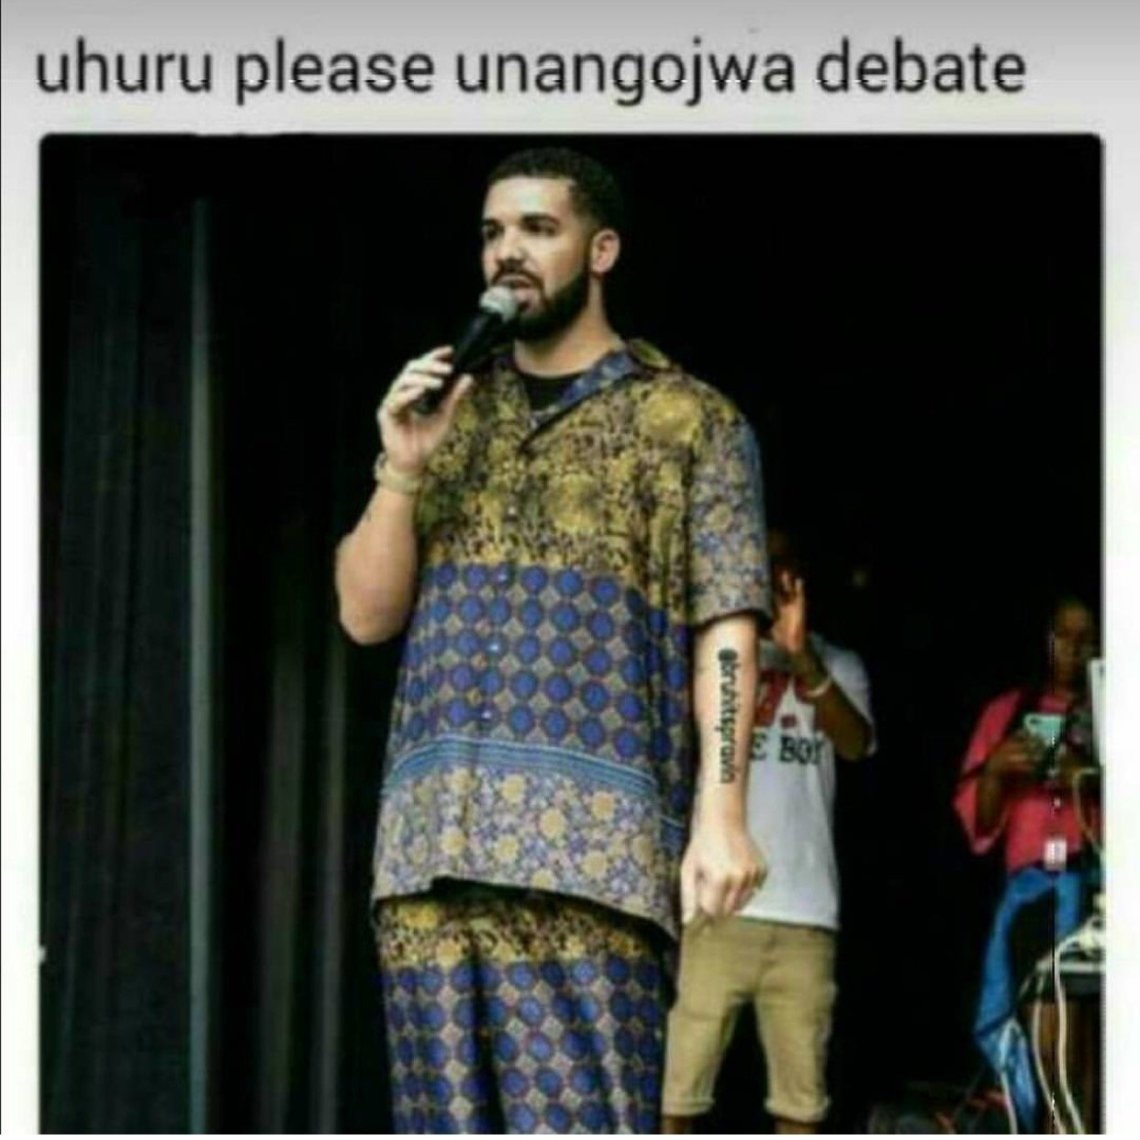 IMG_6641 The memes from President Uhuru snubbing the debate are hilarious!